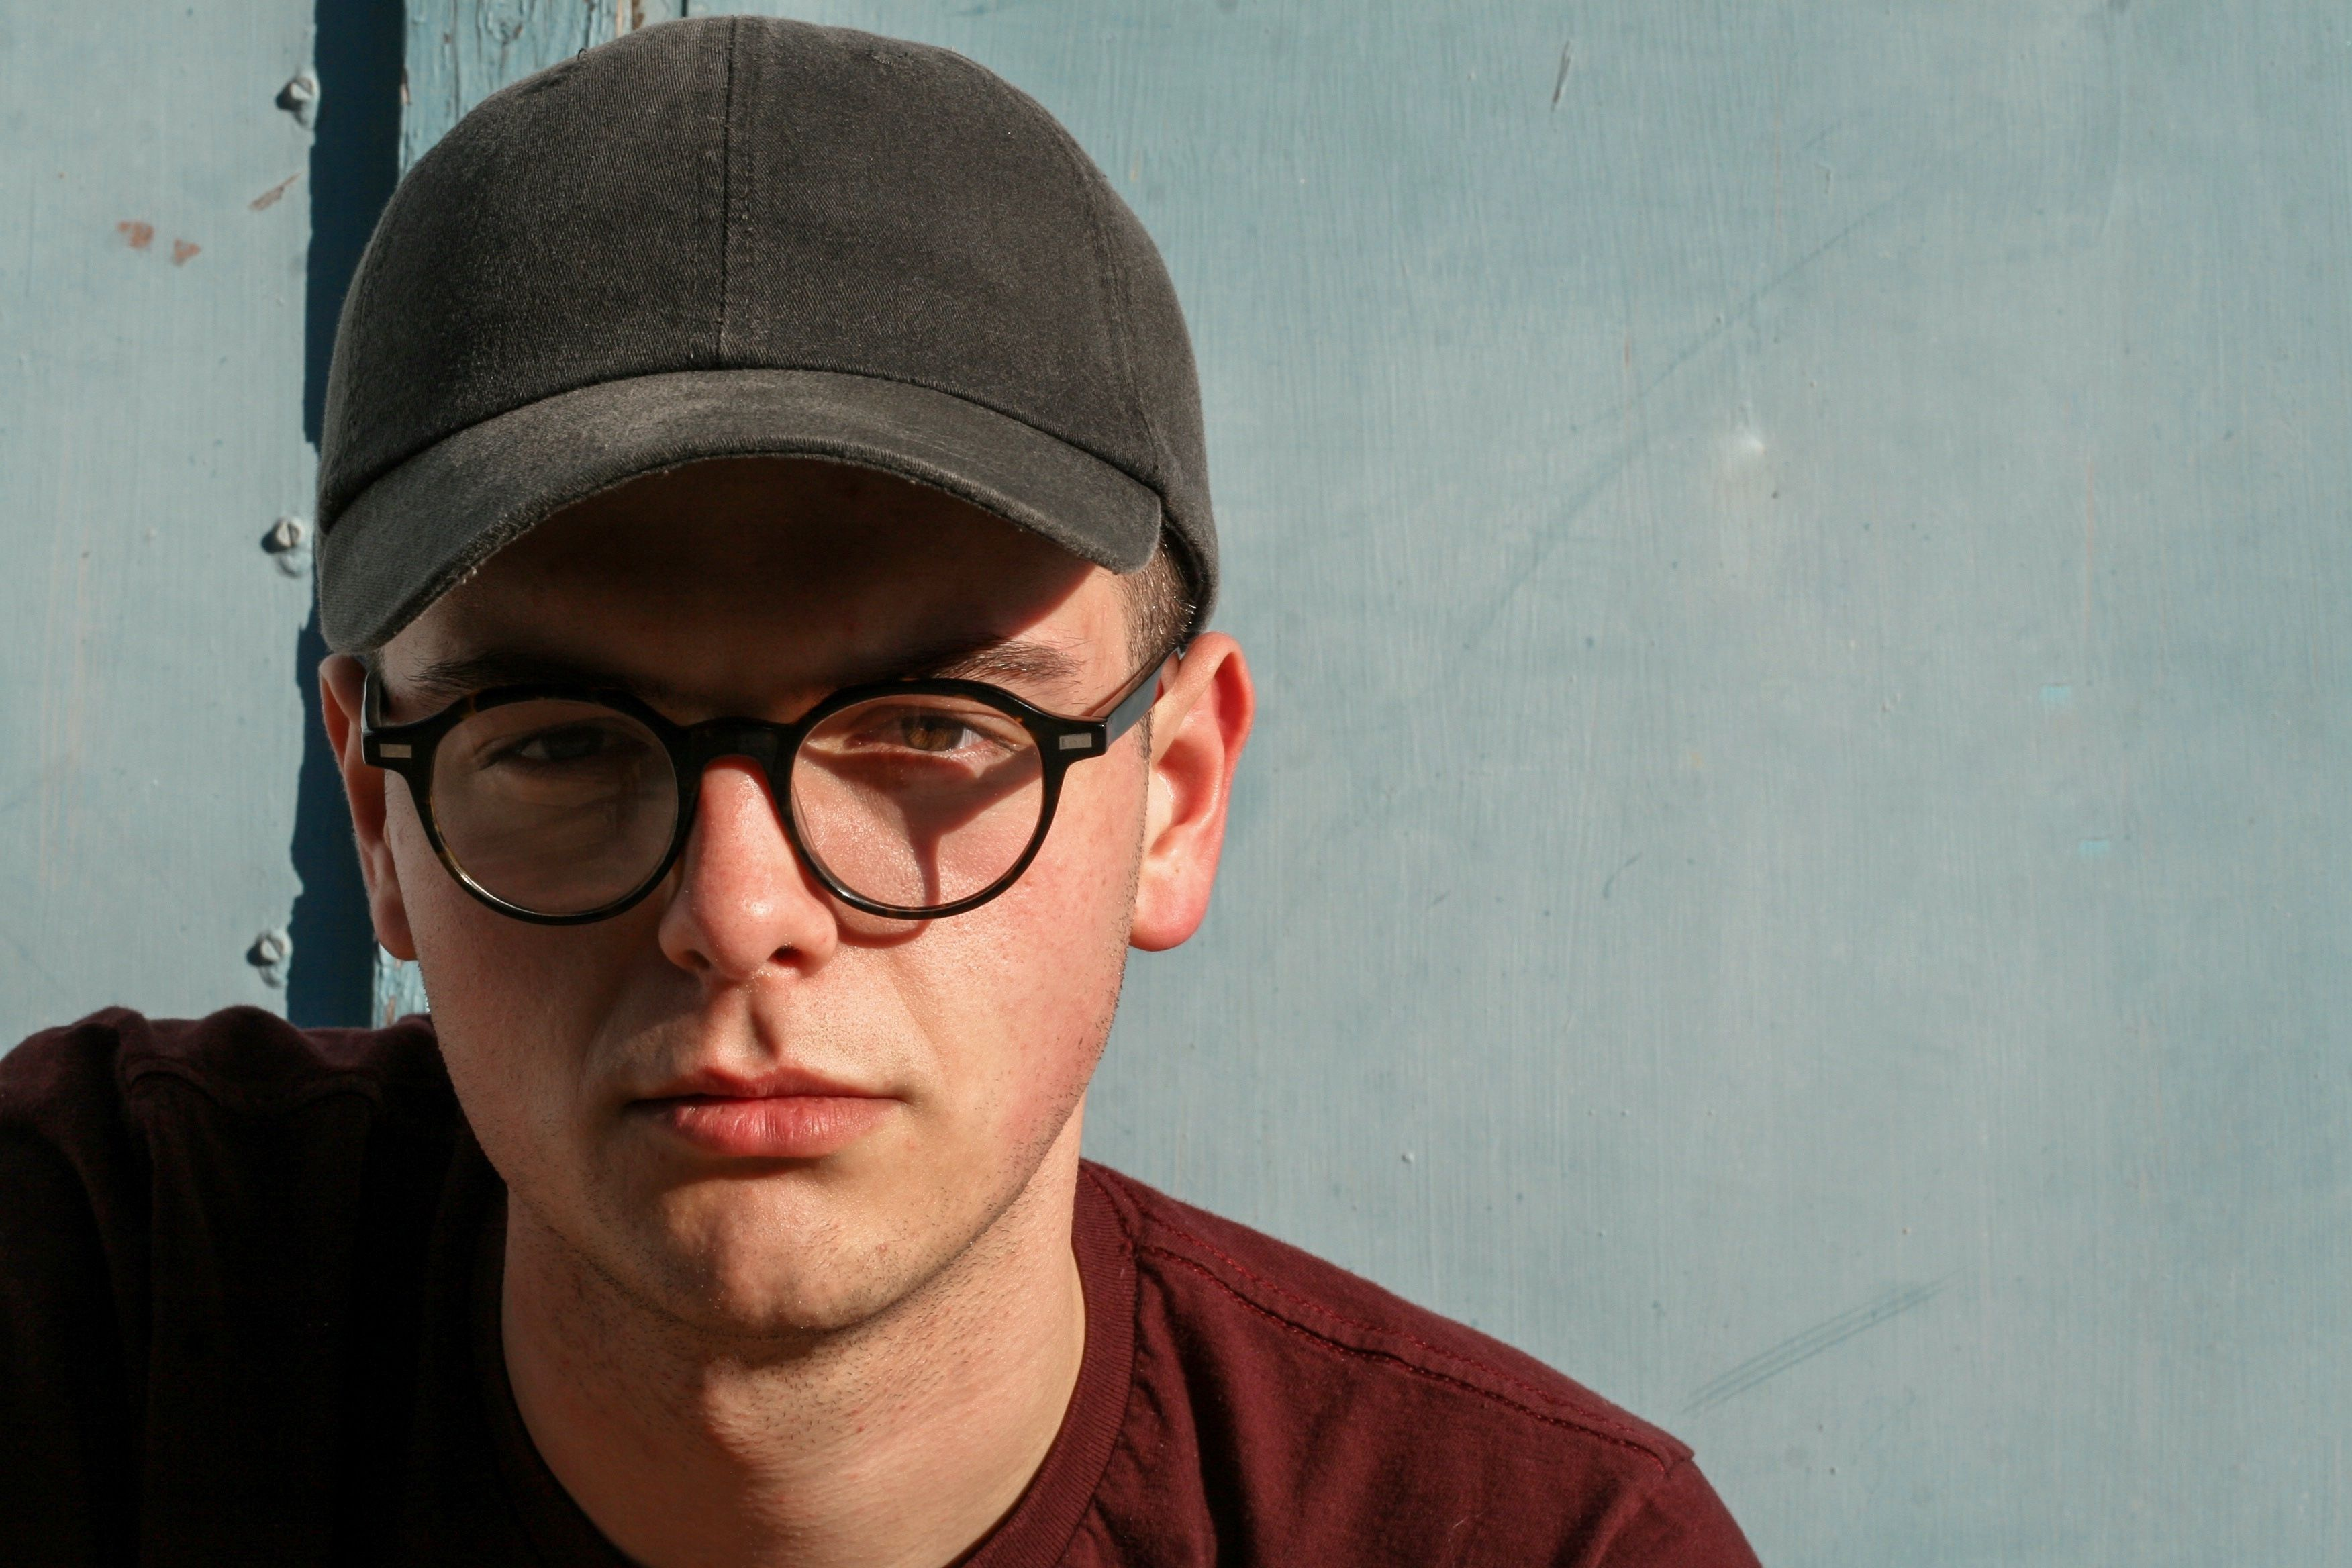 This Is A Photo Of A Young Good Looking Man Wearing A Very Stylish Dad Hat Cap From Https Hatforg Glasses Prescription Glasses Online Prescription Glasses